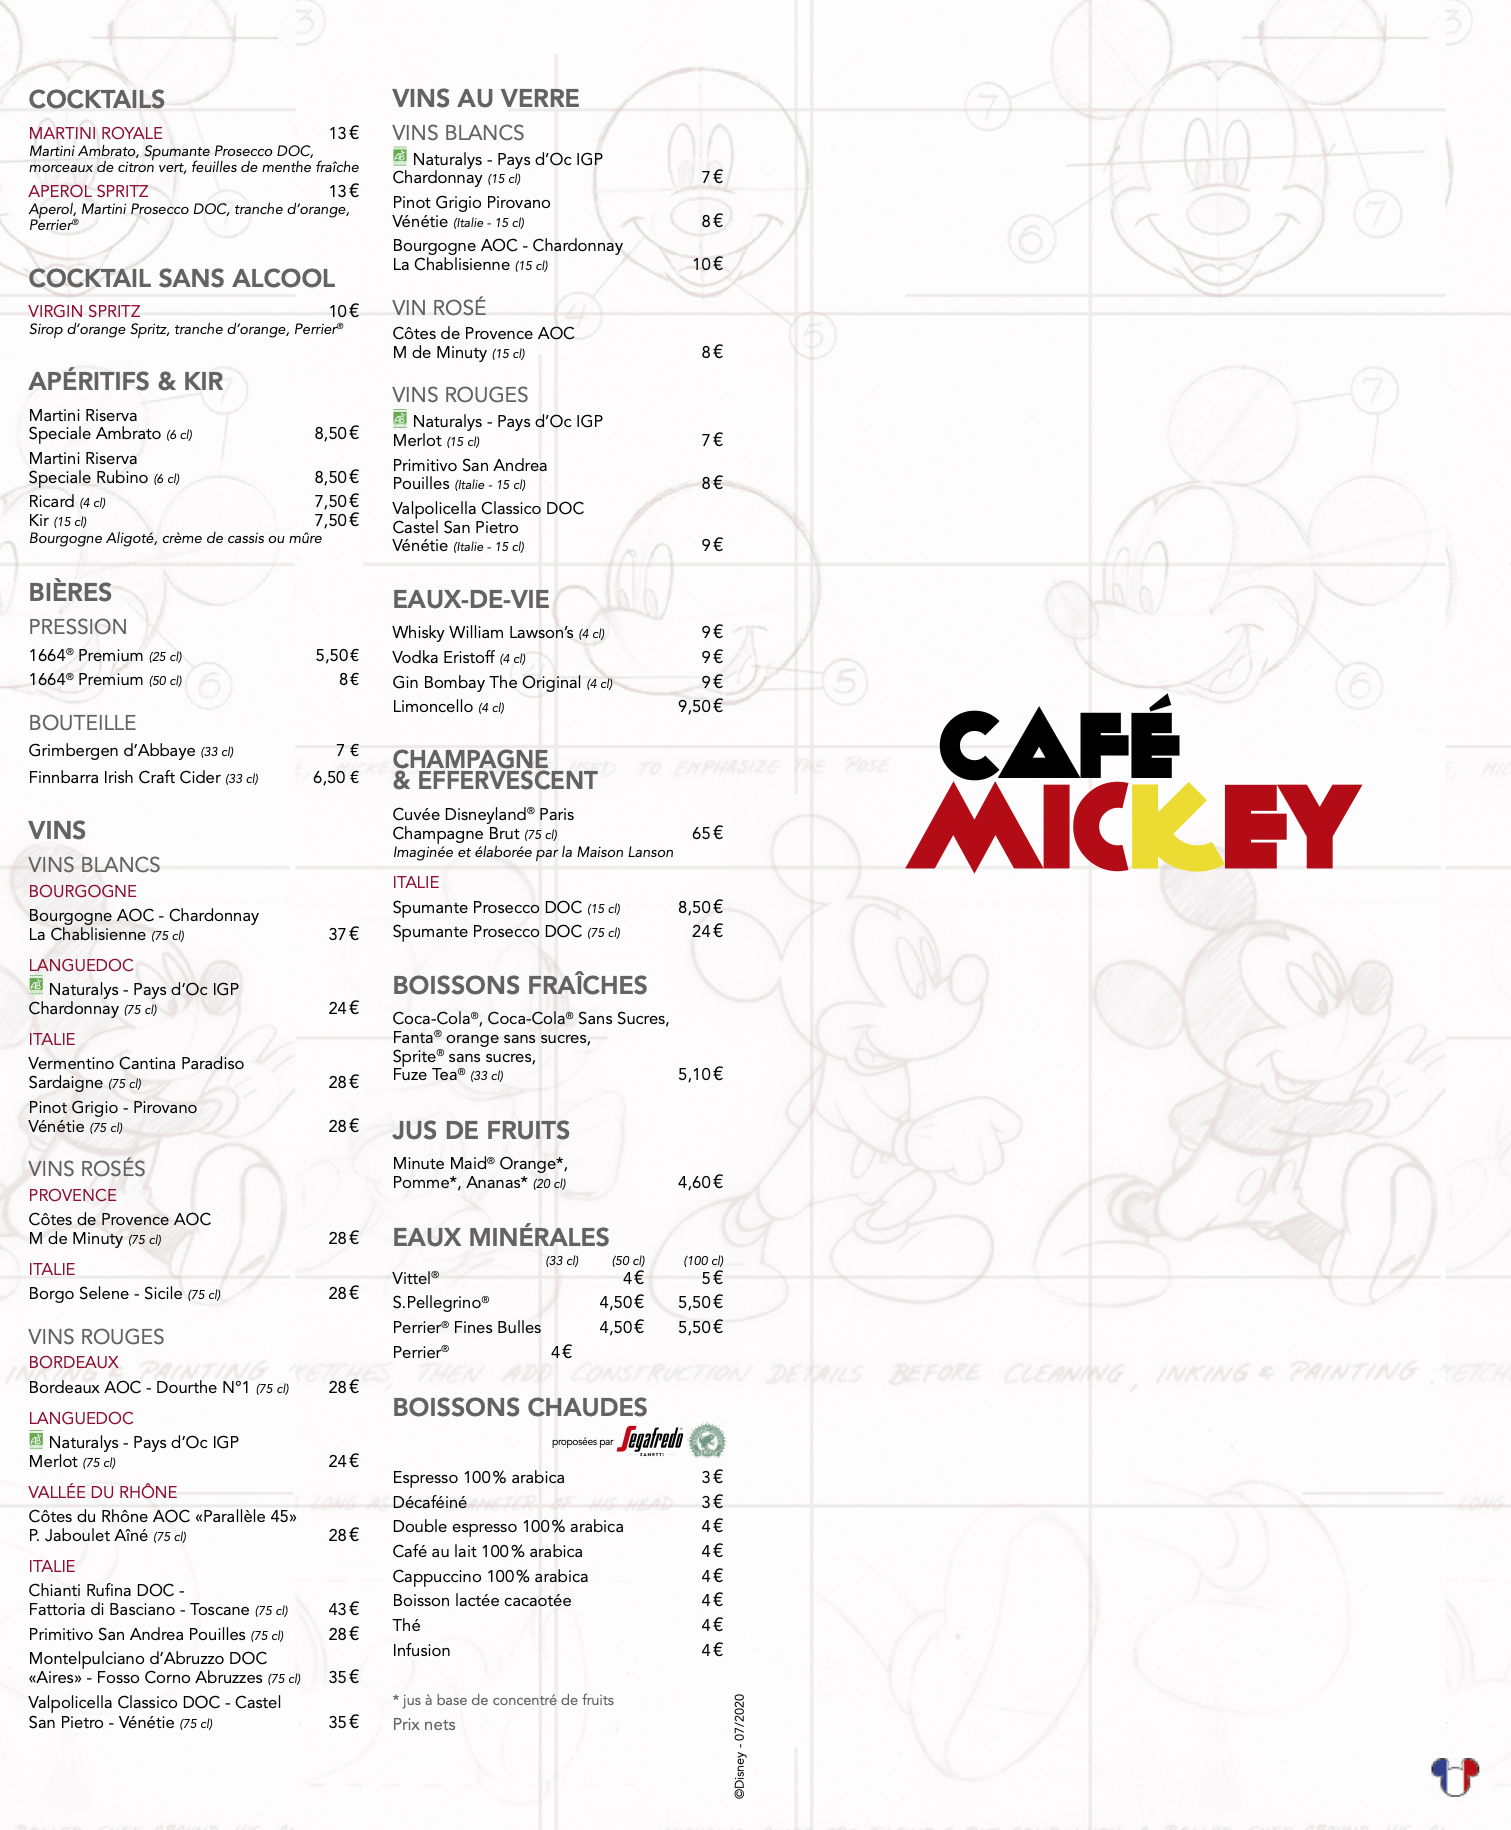 DISNEY-CAFE-MICKEY_128x310_FR_JUIN2020_0207